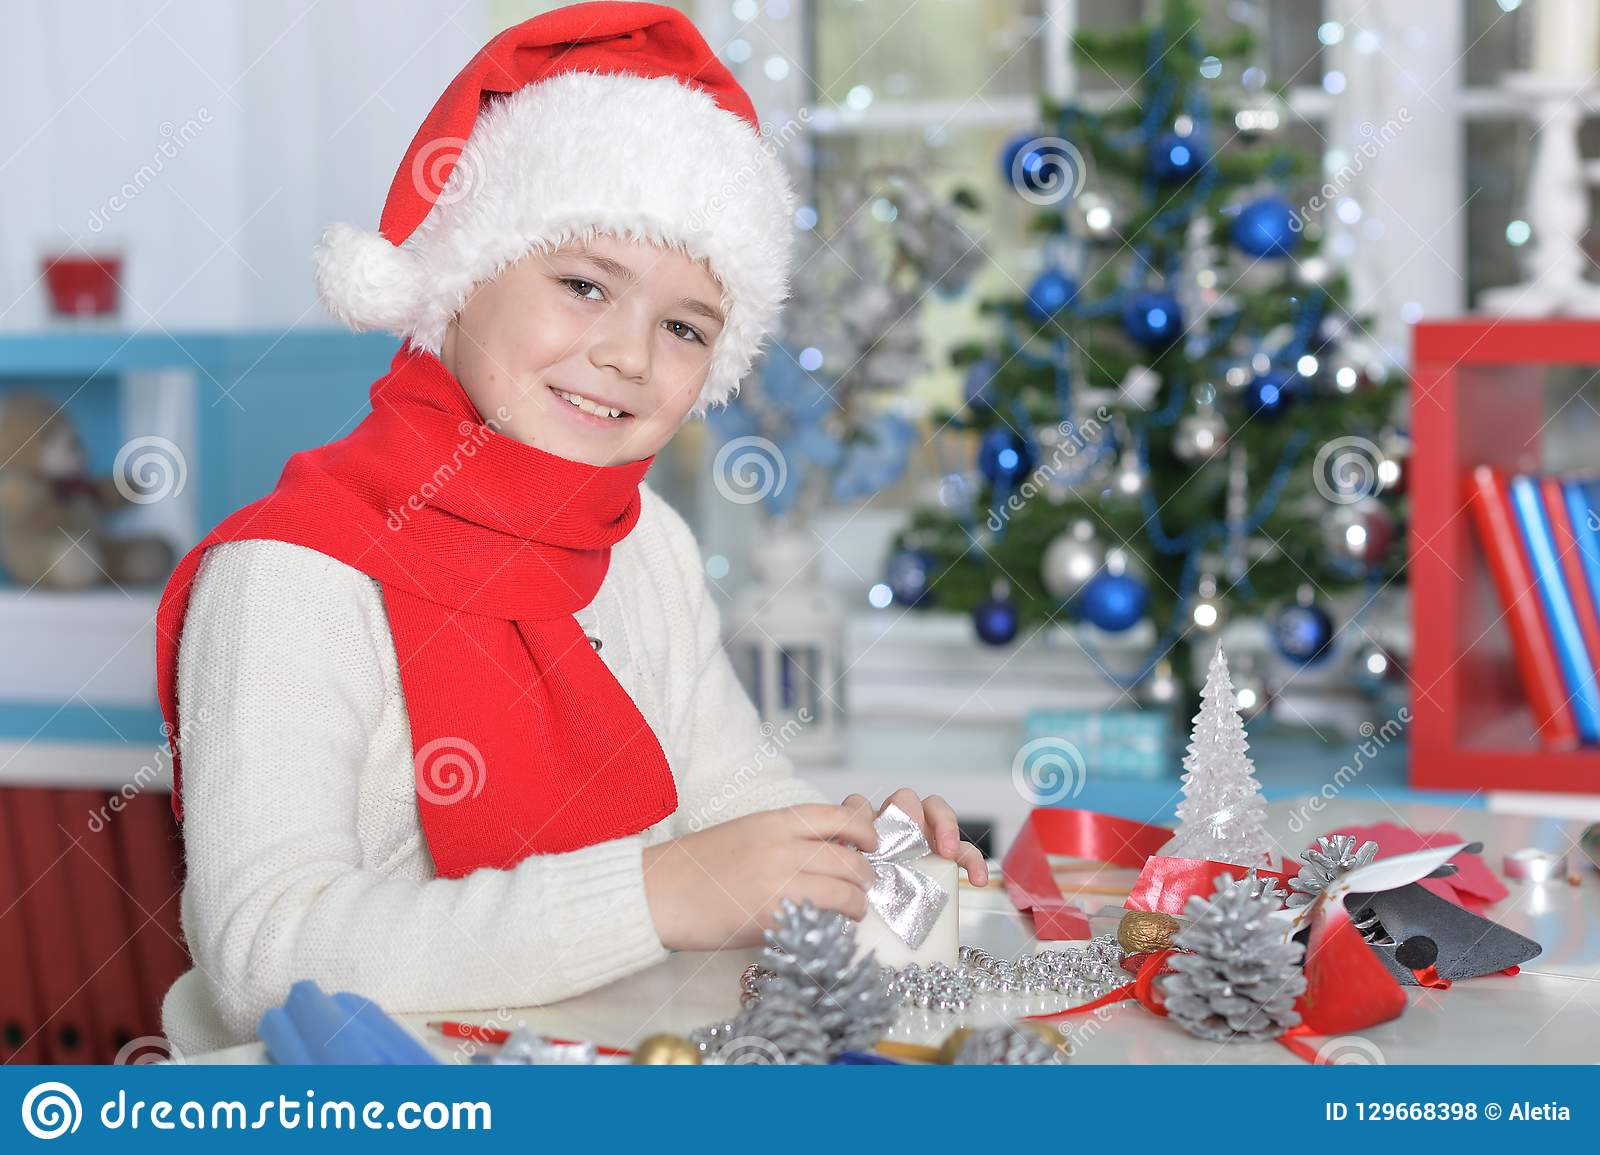 Teen Boy Christmas.Portrait Of Cute Teen Boy Preparing For Christmas Stock